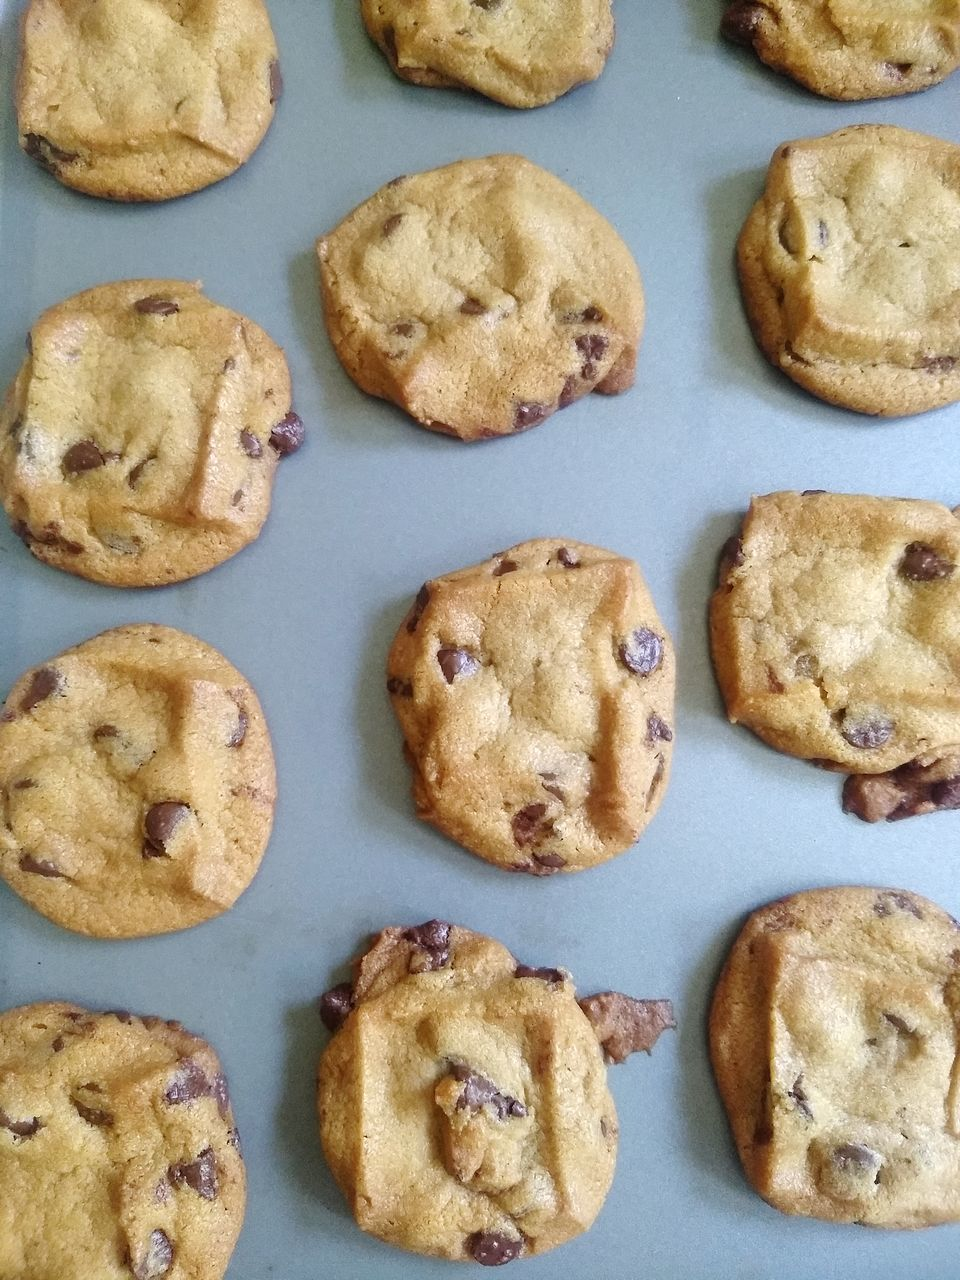 food, food and drink, freshness, sweet food, baked, cookie, indoors, still life, indulgence, temptation, chocolate chip cookie, unhealthy eating, directly above, ready-to-eat, no people, high angle view, chocolate, dessert, sweet, baking sheet, snack, tray